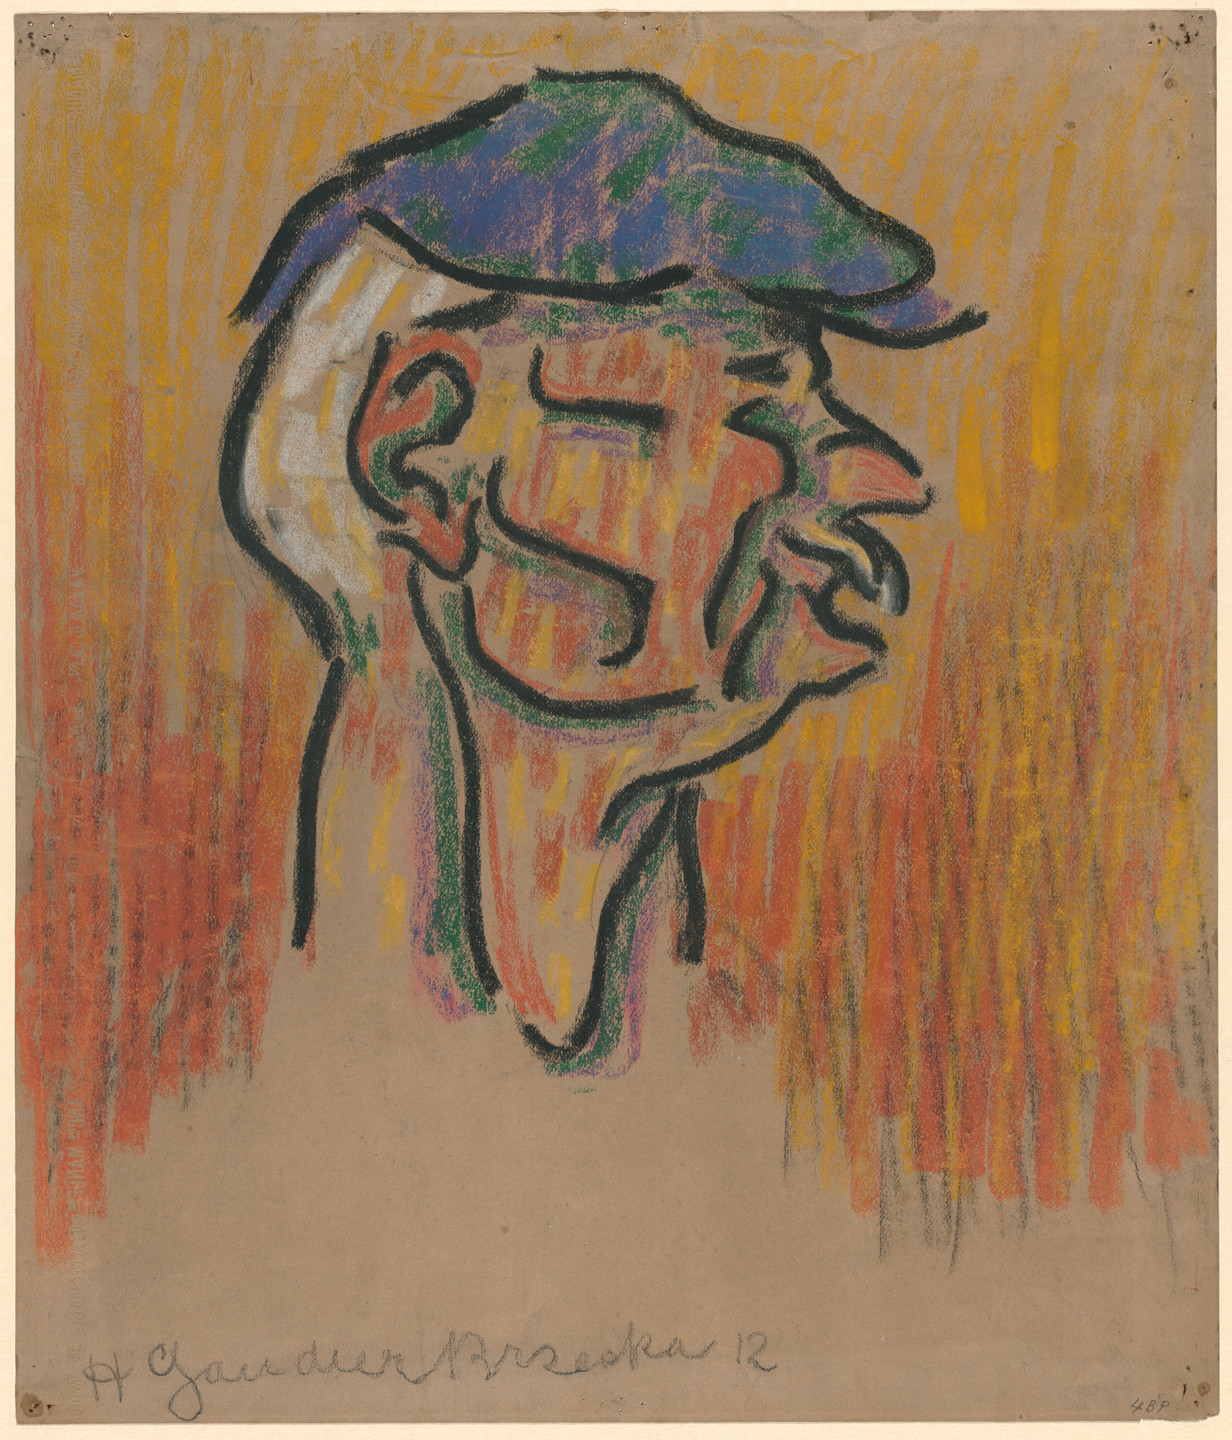 Henri Gaudier-Brzeska. A Labourer (Man with Cap). 1912